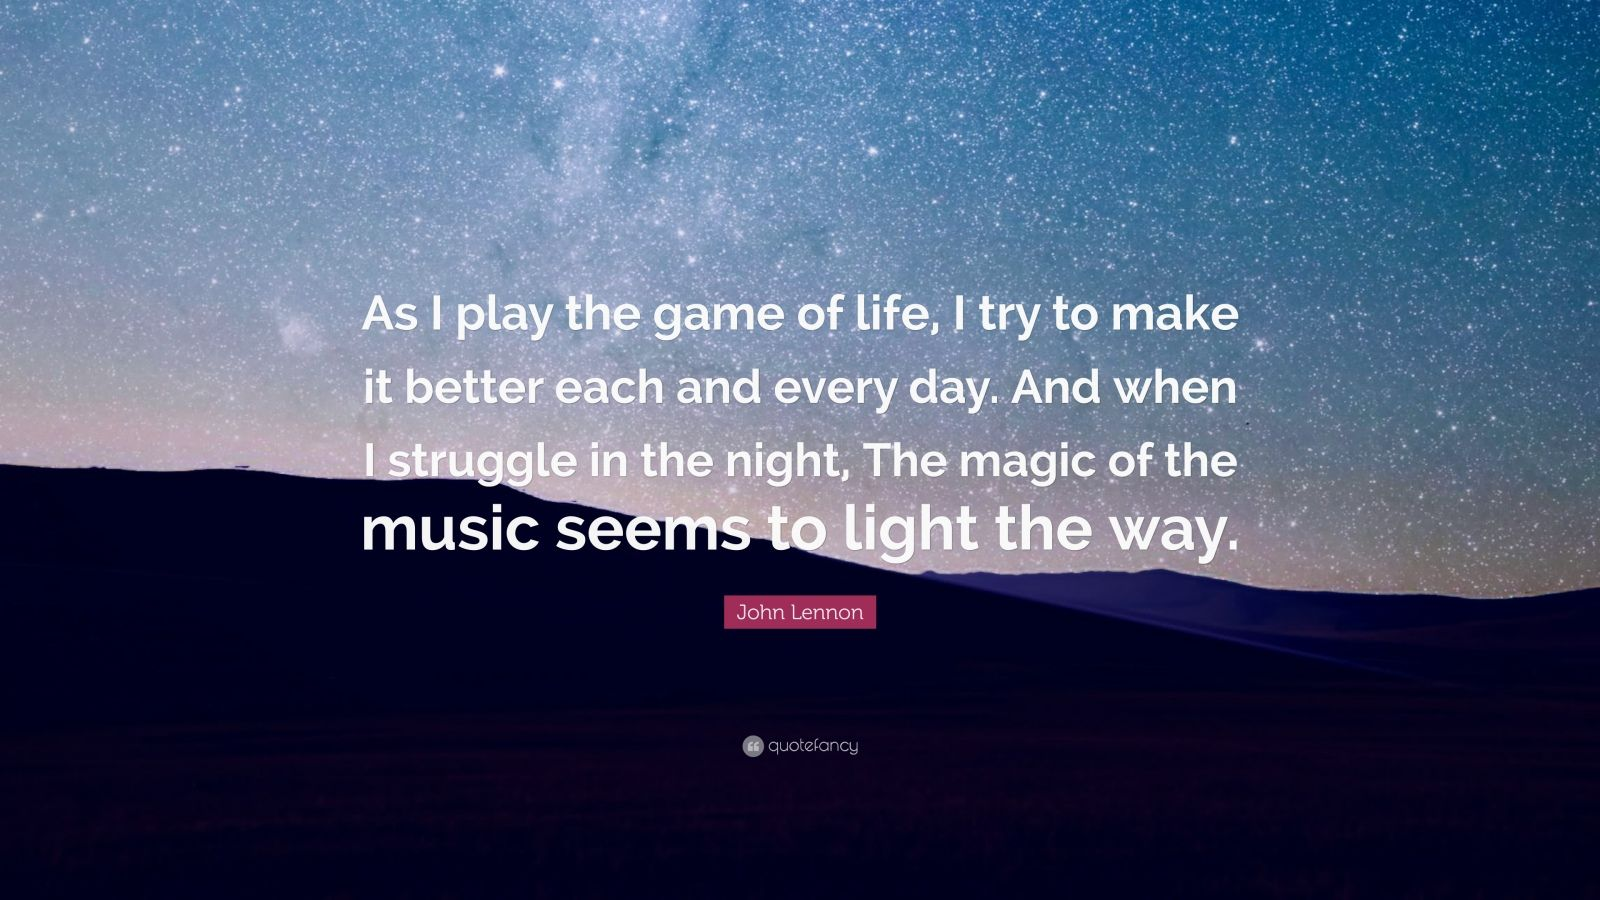 """John Lennon Quote: """"As I play the game of life, I try to make it better each and every day. And when I struggle in the night, The magic of the music seems to light the way."""""""